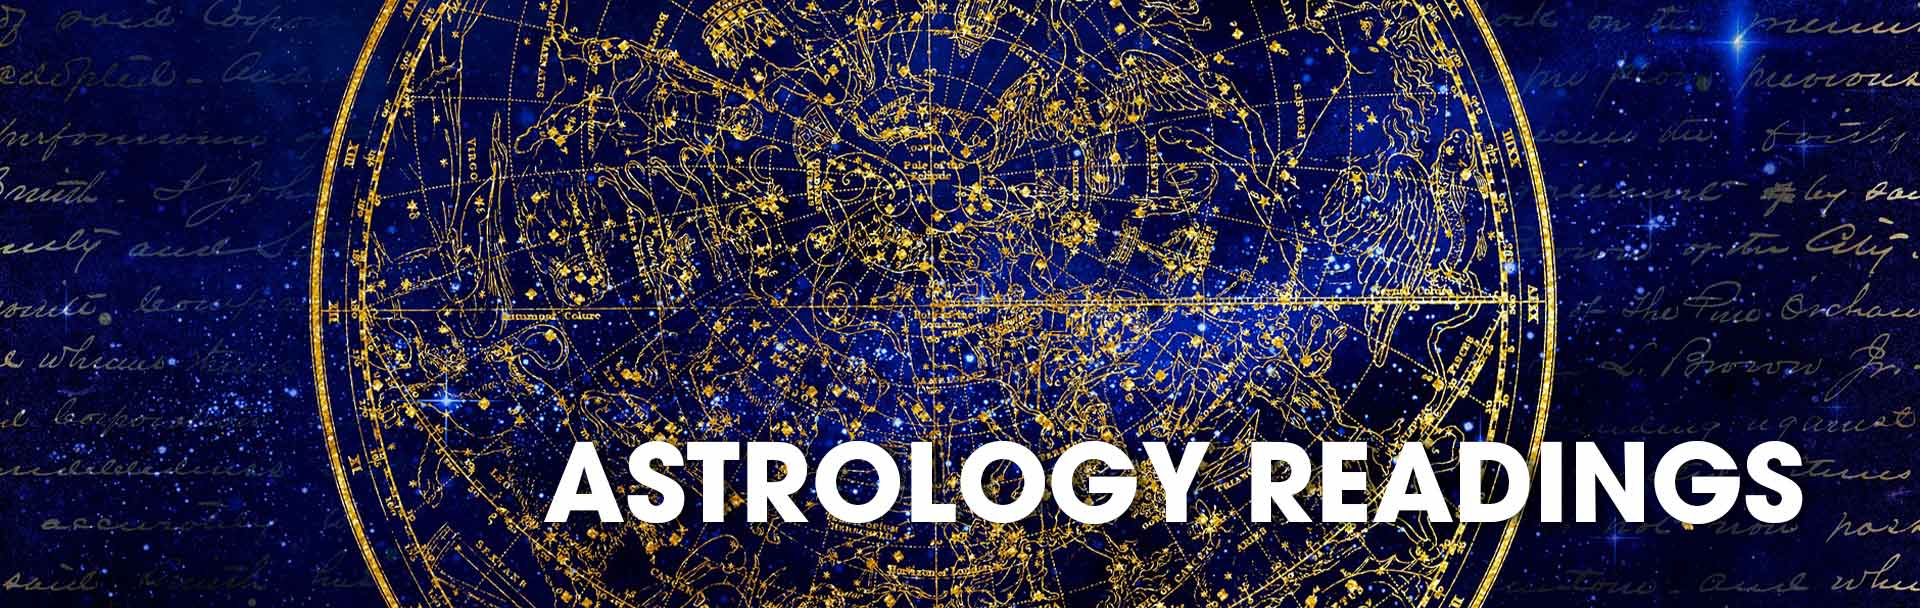 Kat Wojdyla offers astrology mini-readings at the Sir Arthur Conan Doyle Centre in Edinburgh